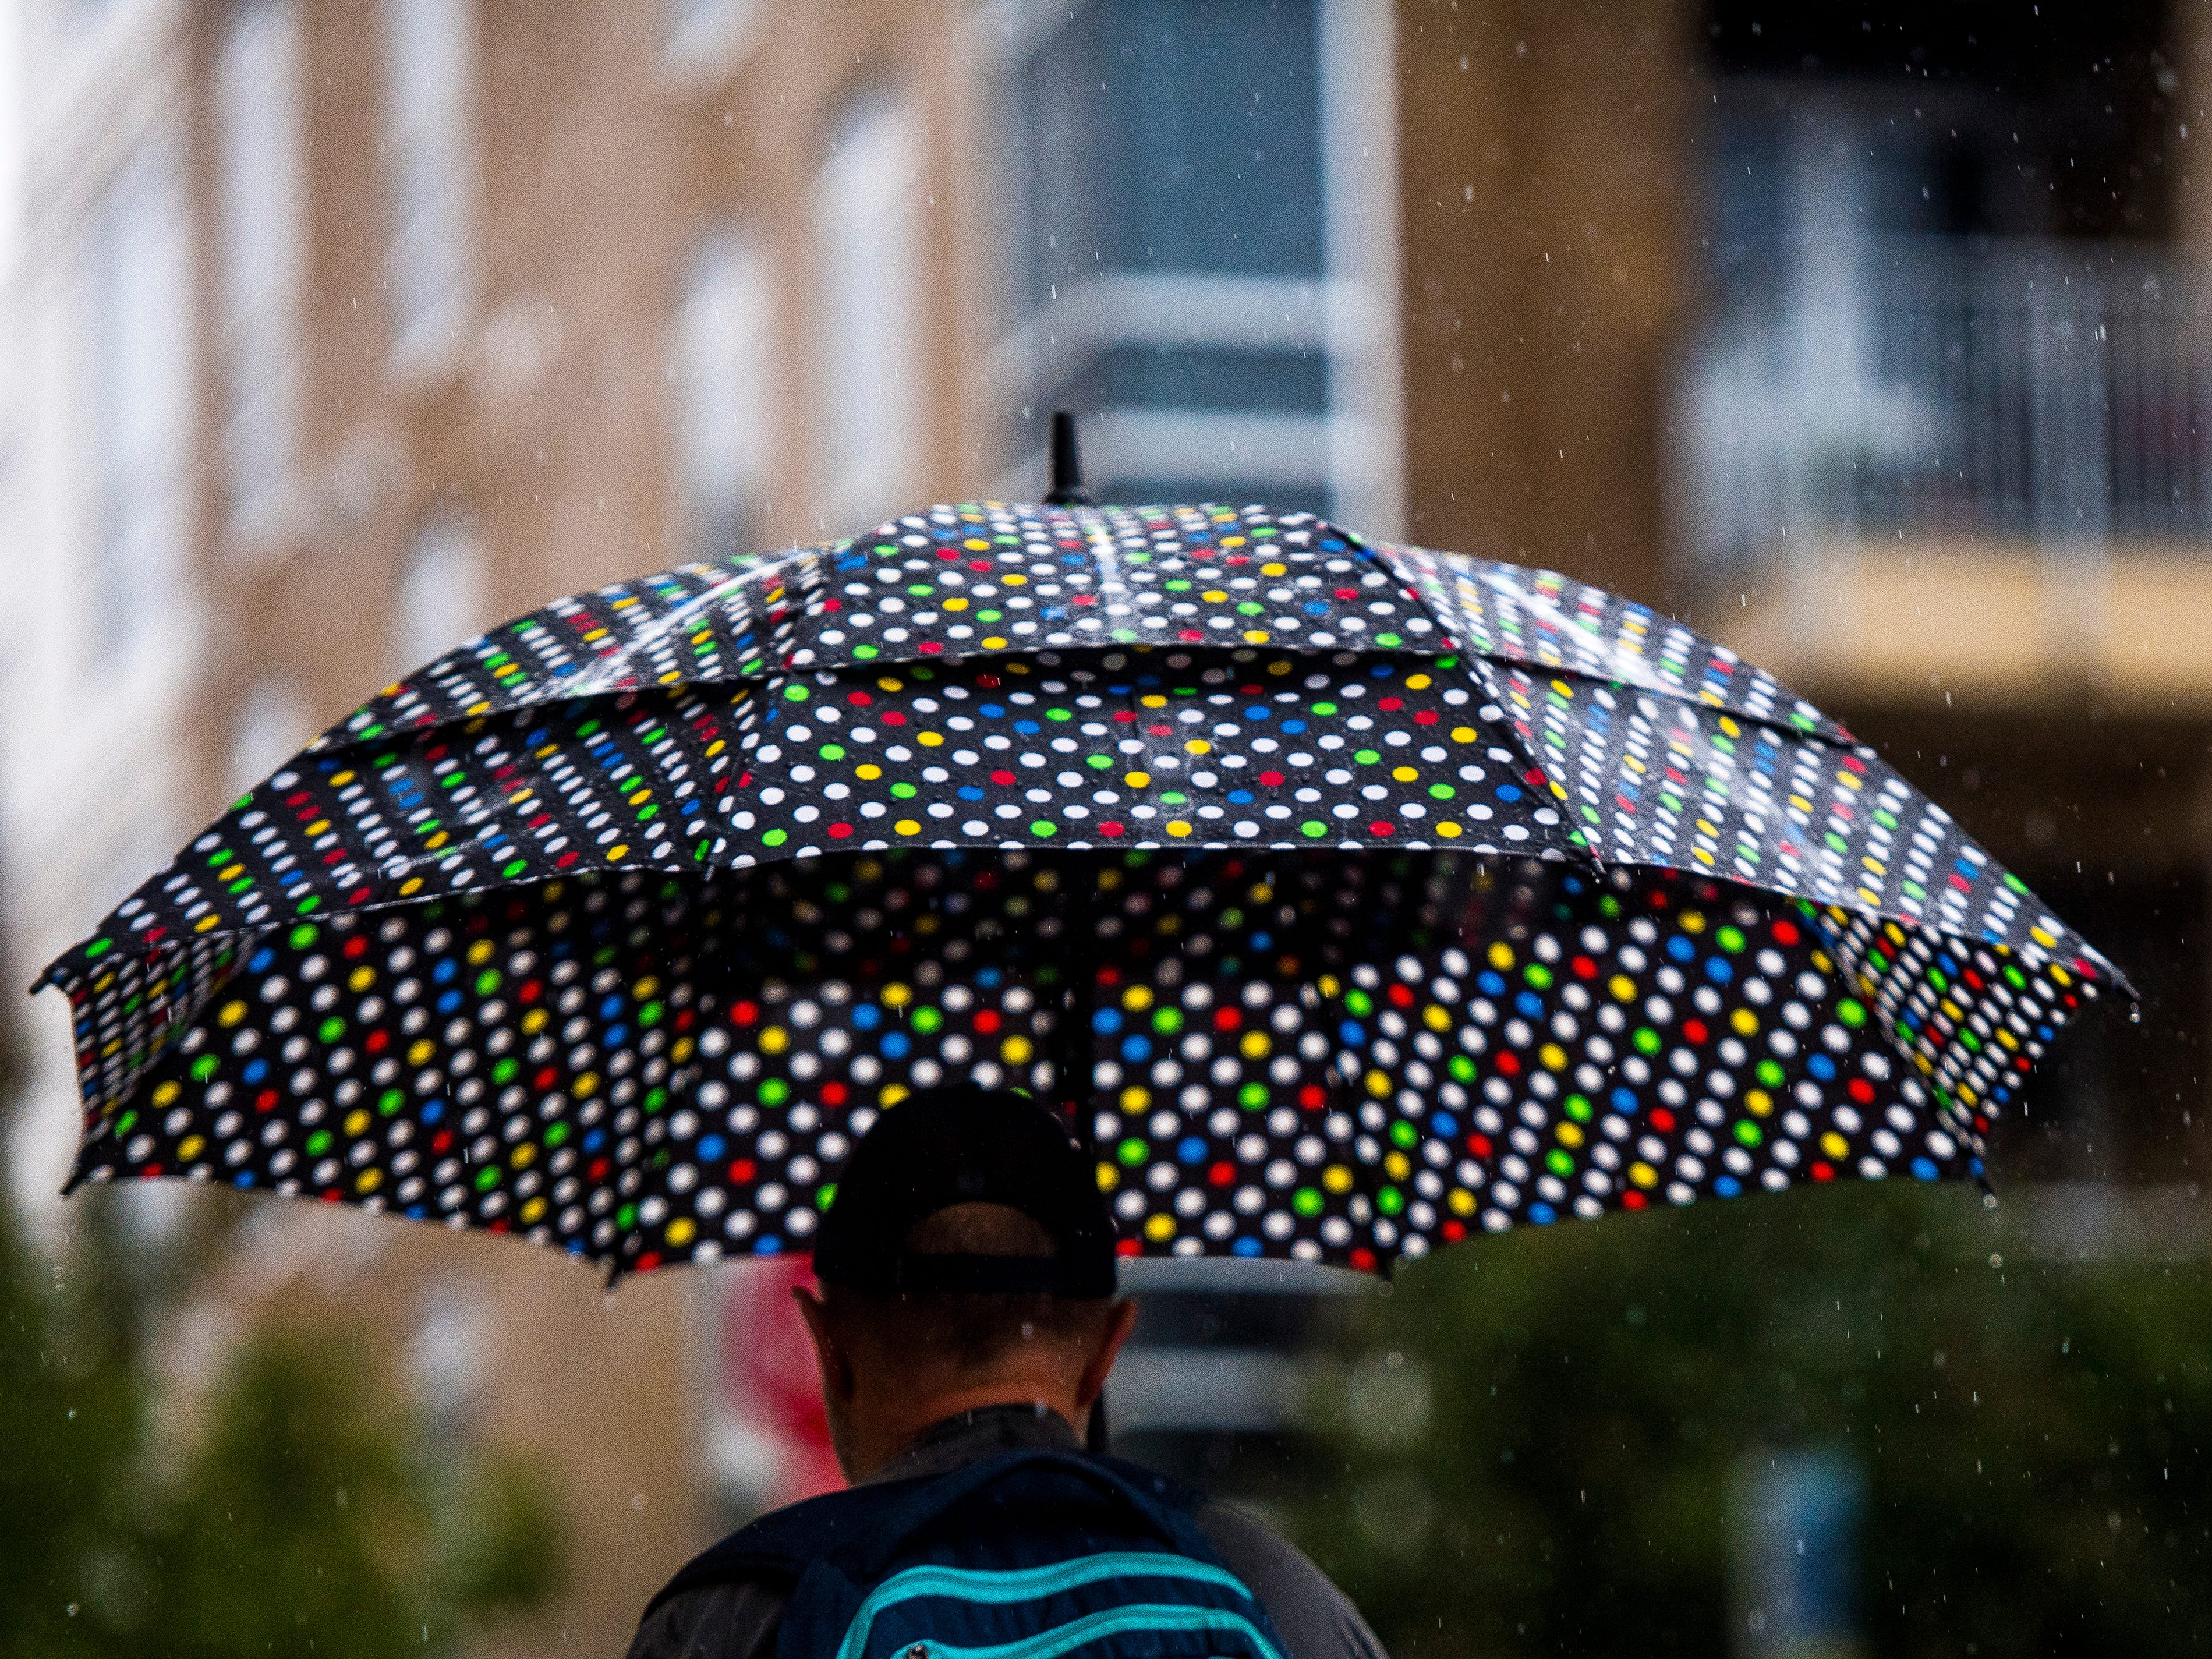 Rain falls on a colorful dotted umbrella in downtown Knoxville on Wednesday, September 26, 2018.